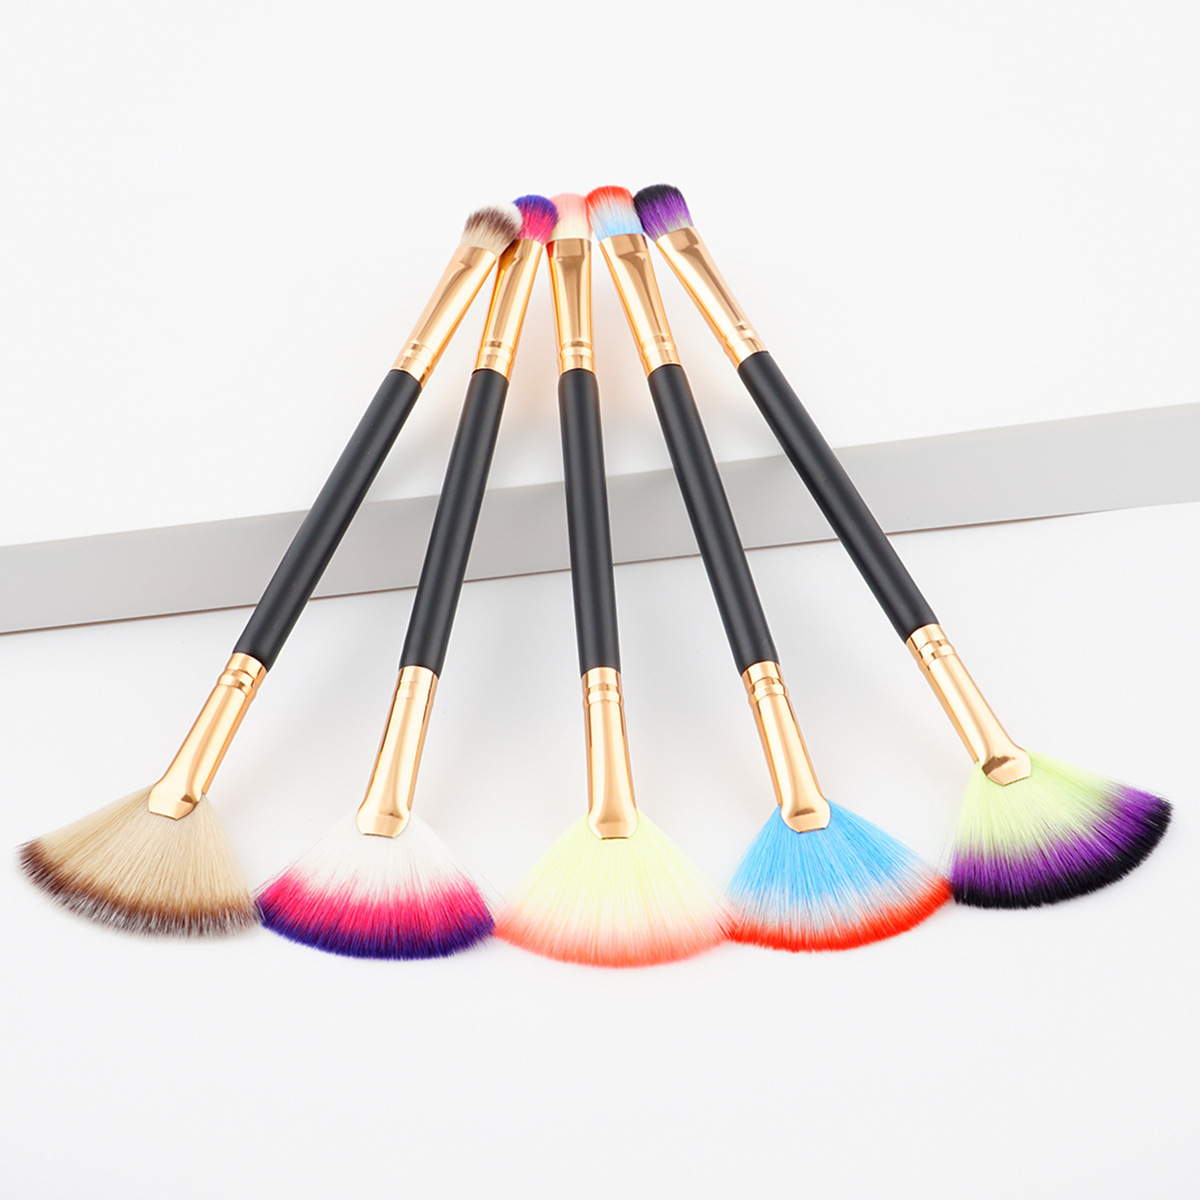 Duo end makeup brush